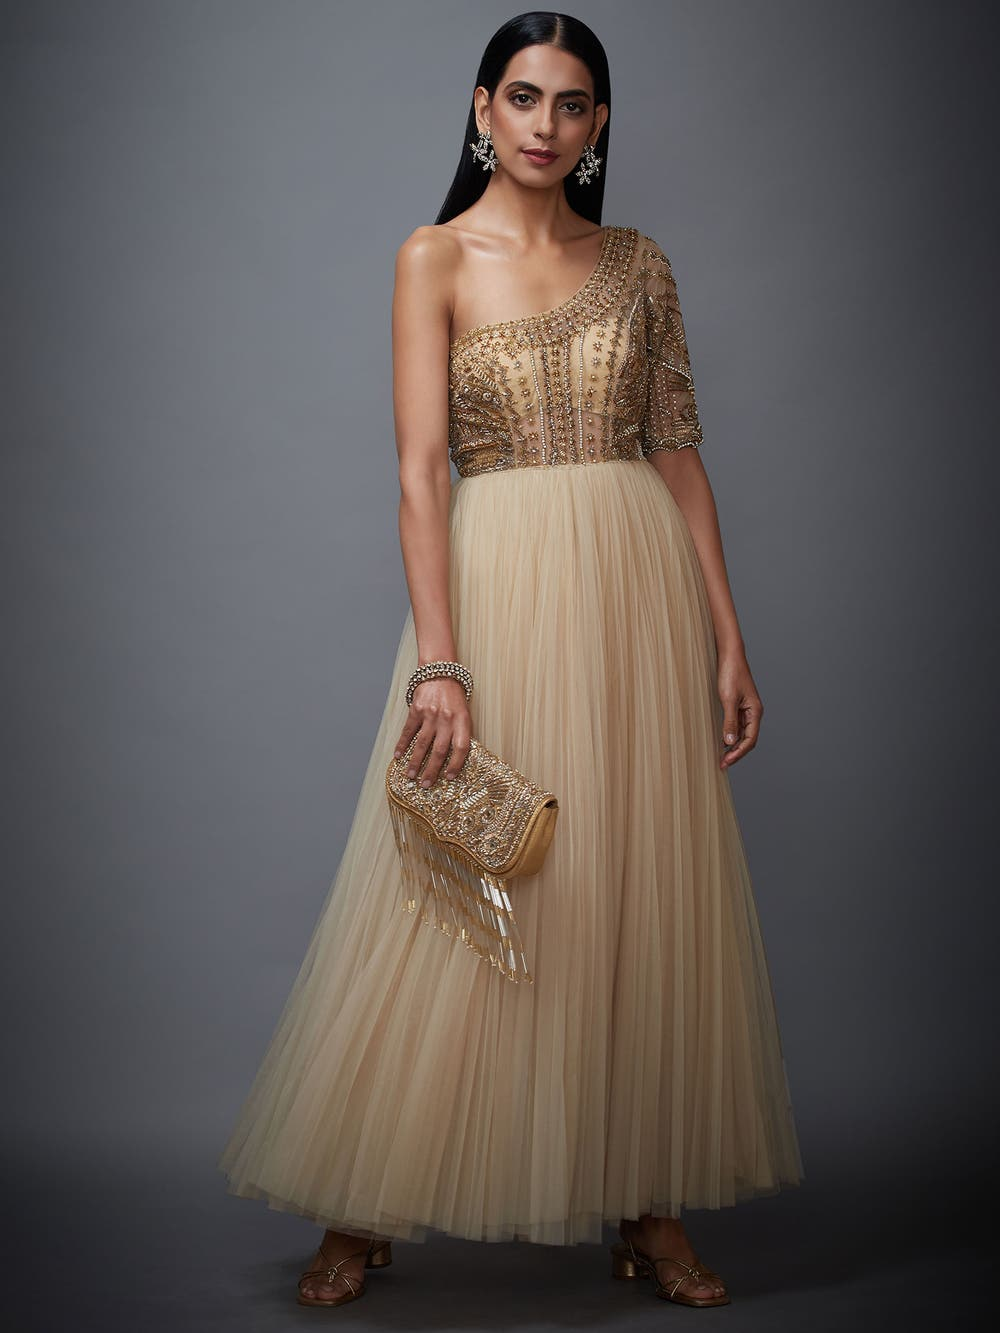 Beige & Gold Sonar Net Dress